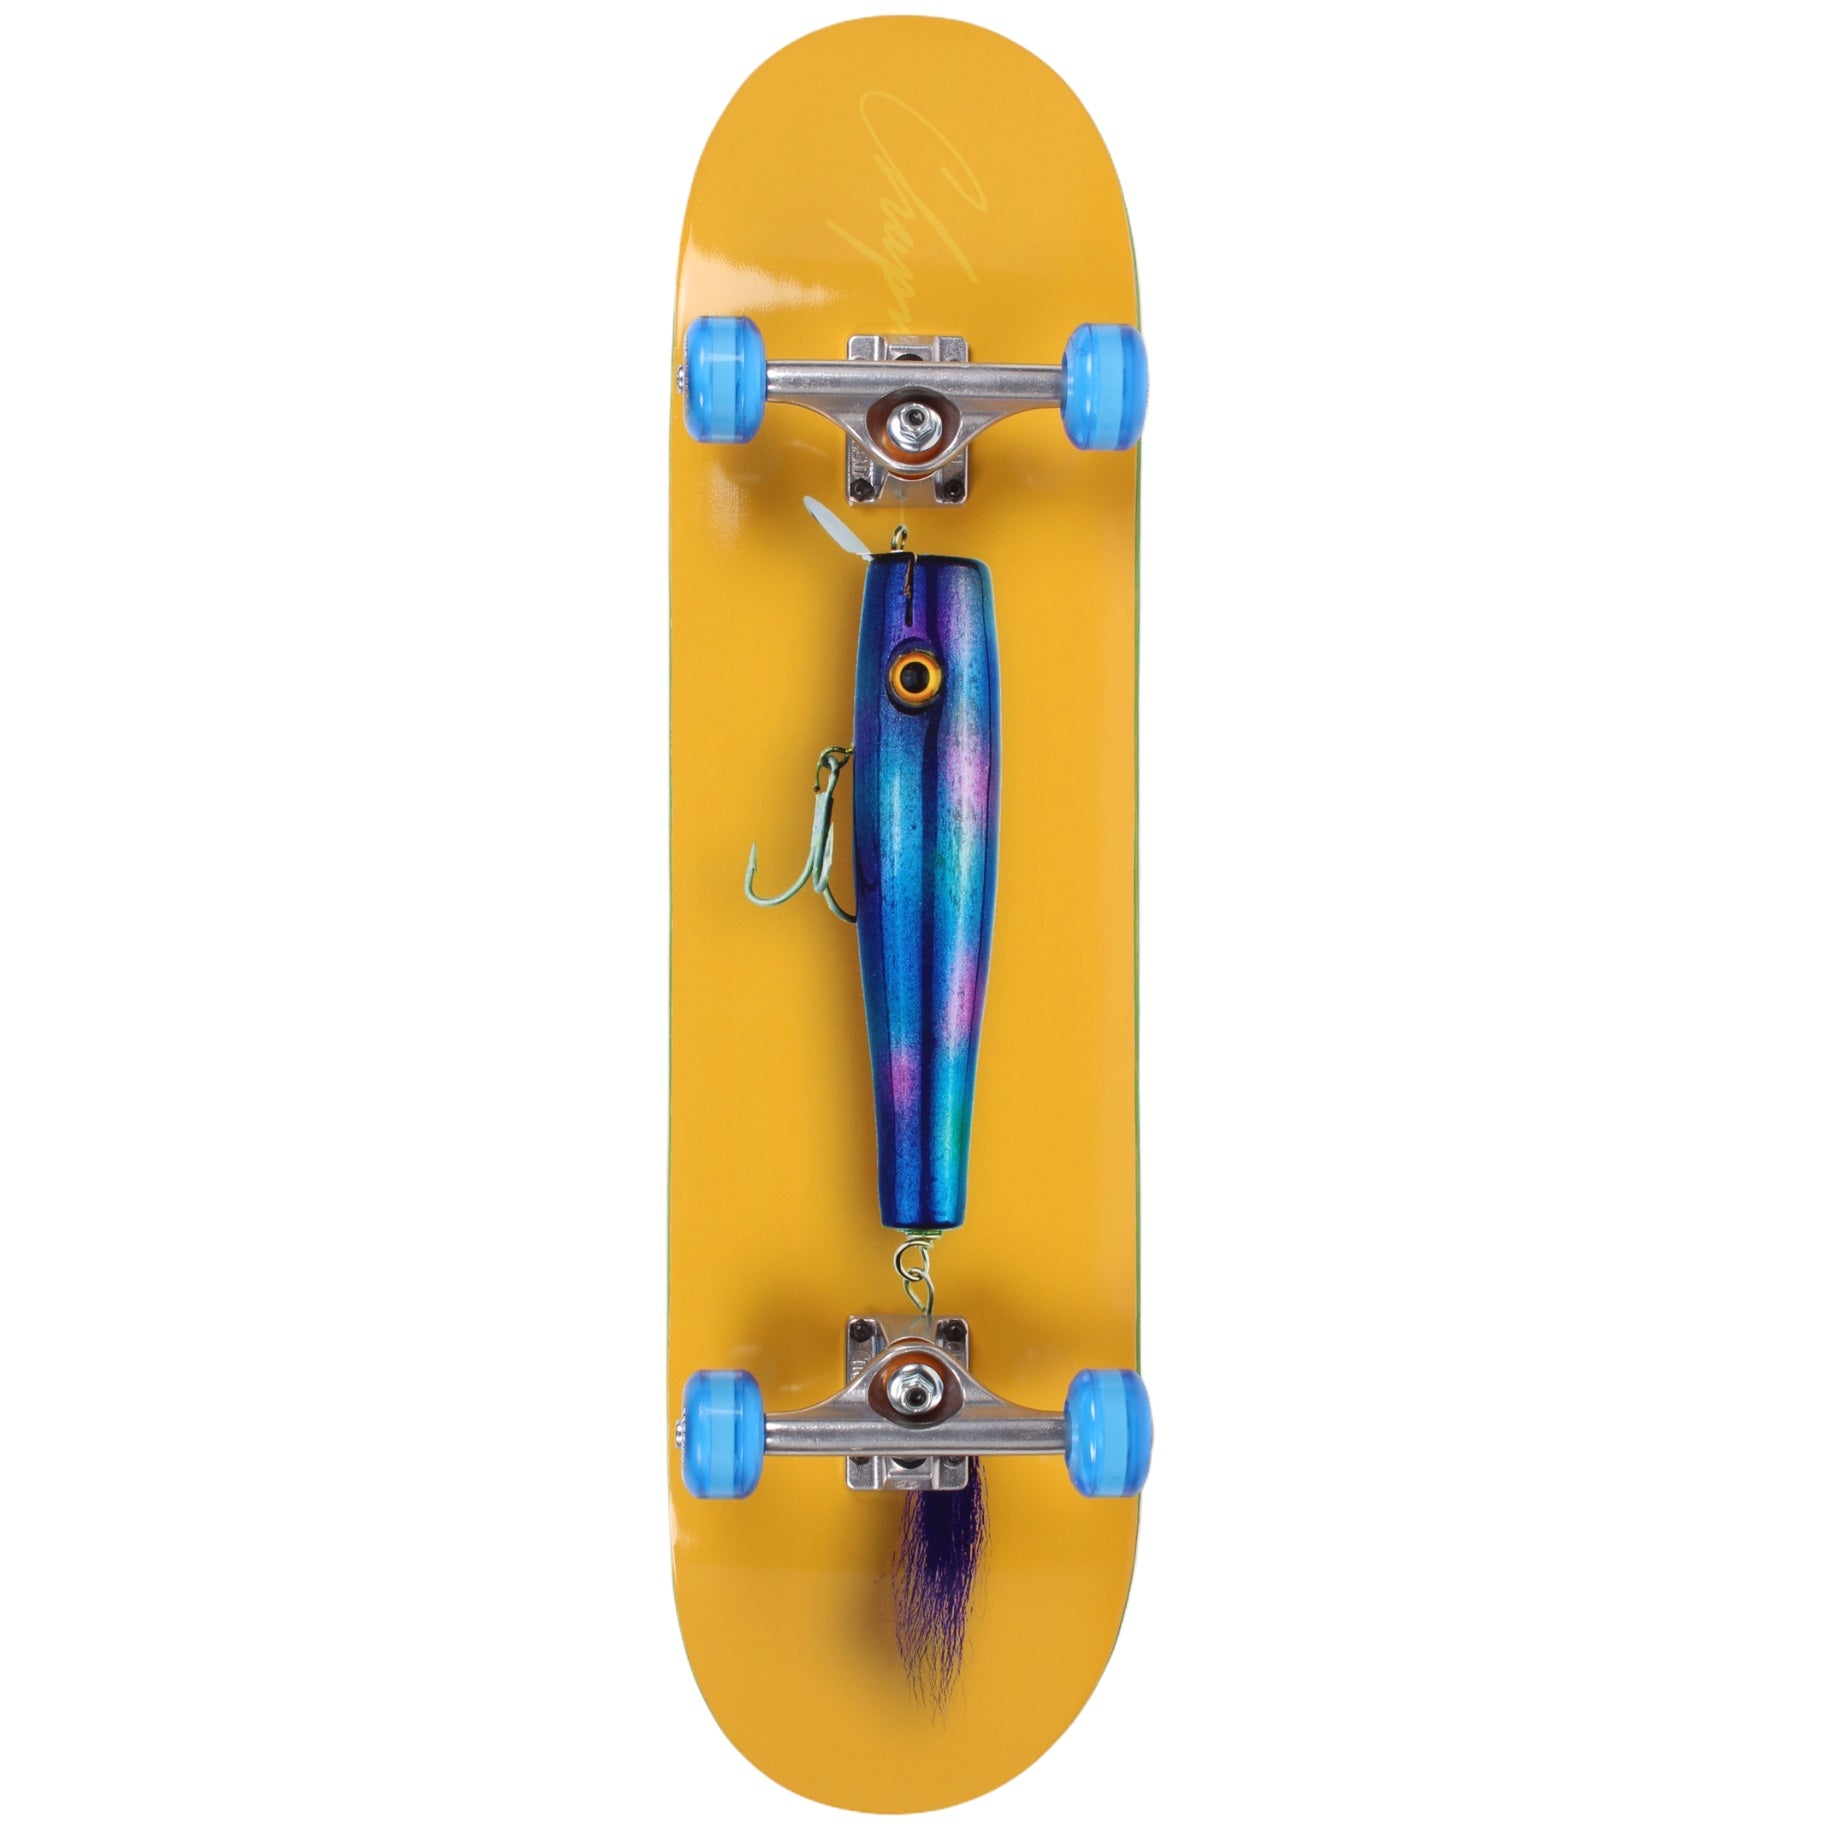 Chapman Lure Yellow Hybrid Complete Skateboard 8.3 (With Free Skate Tool)